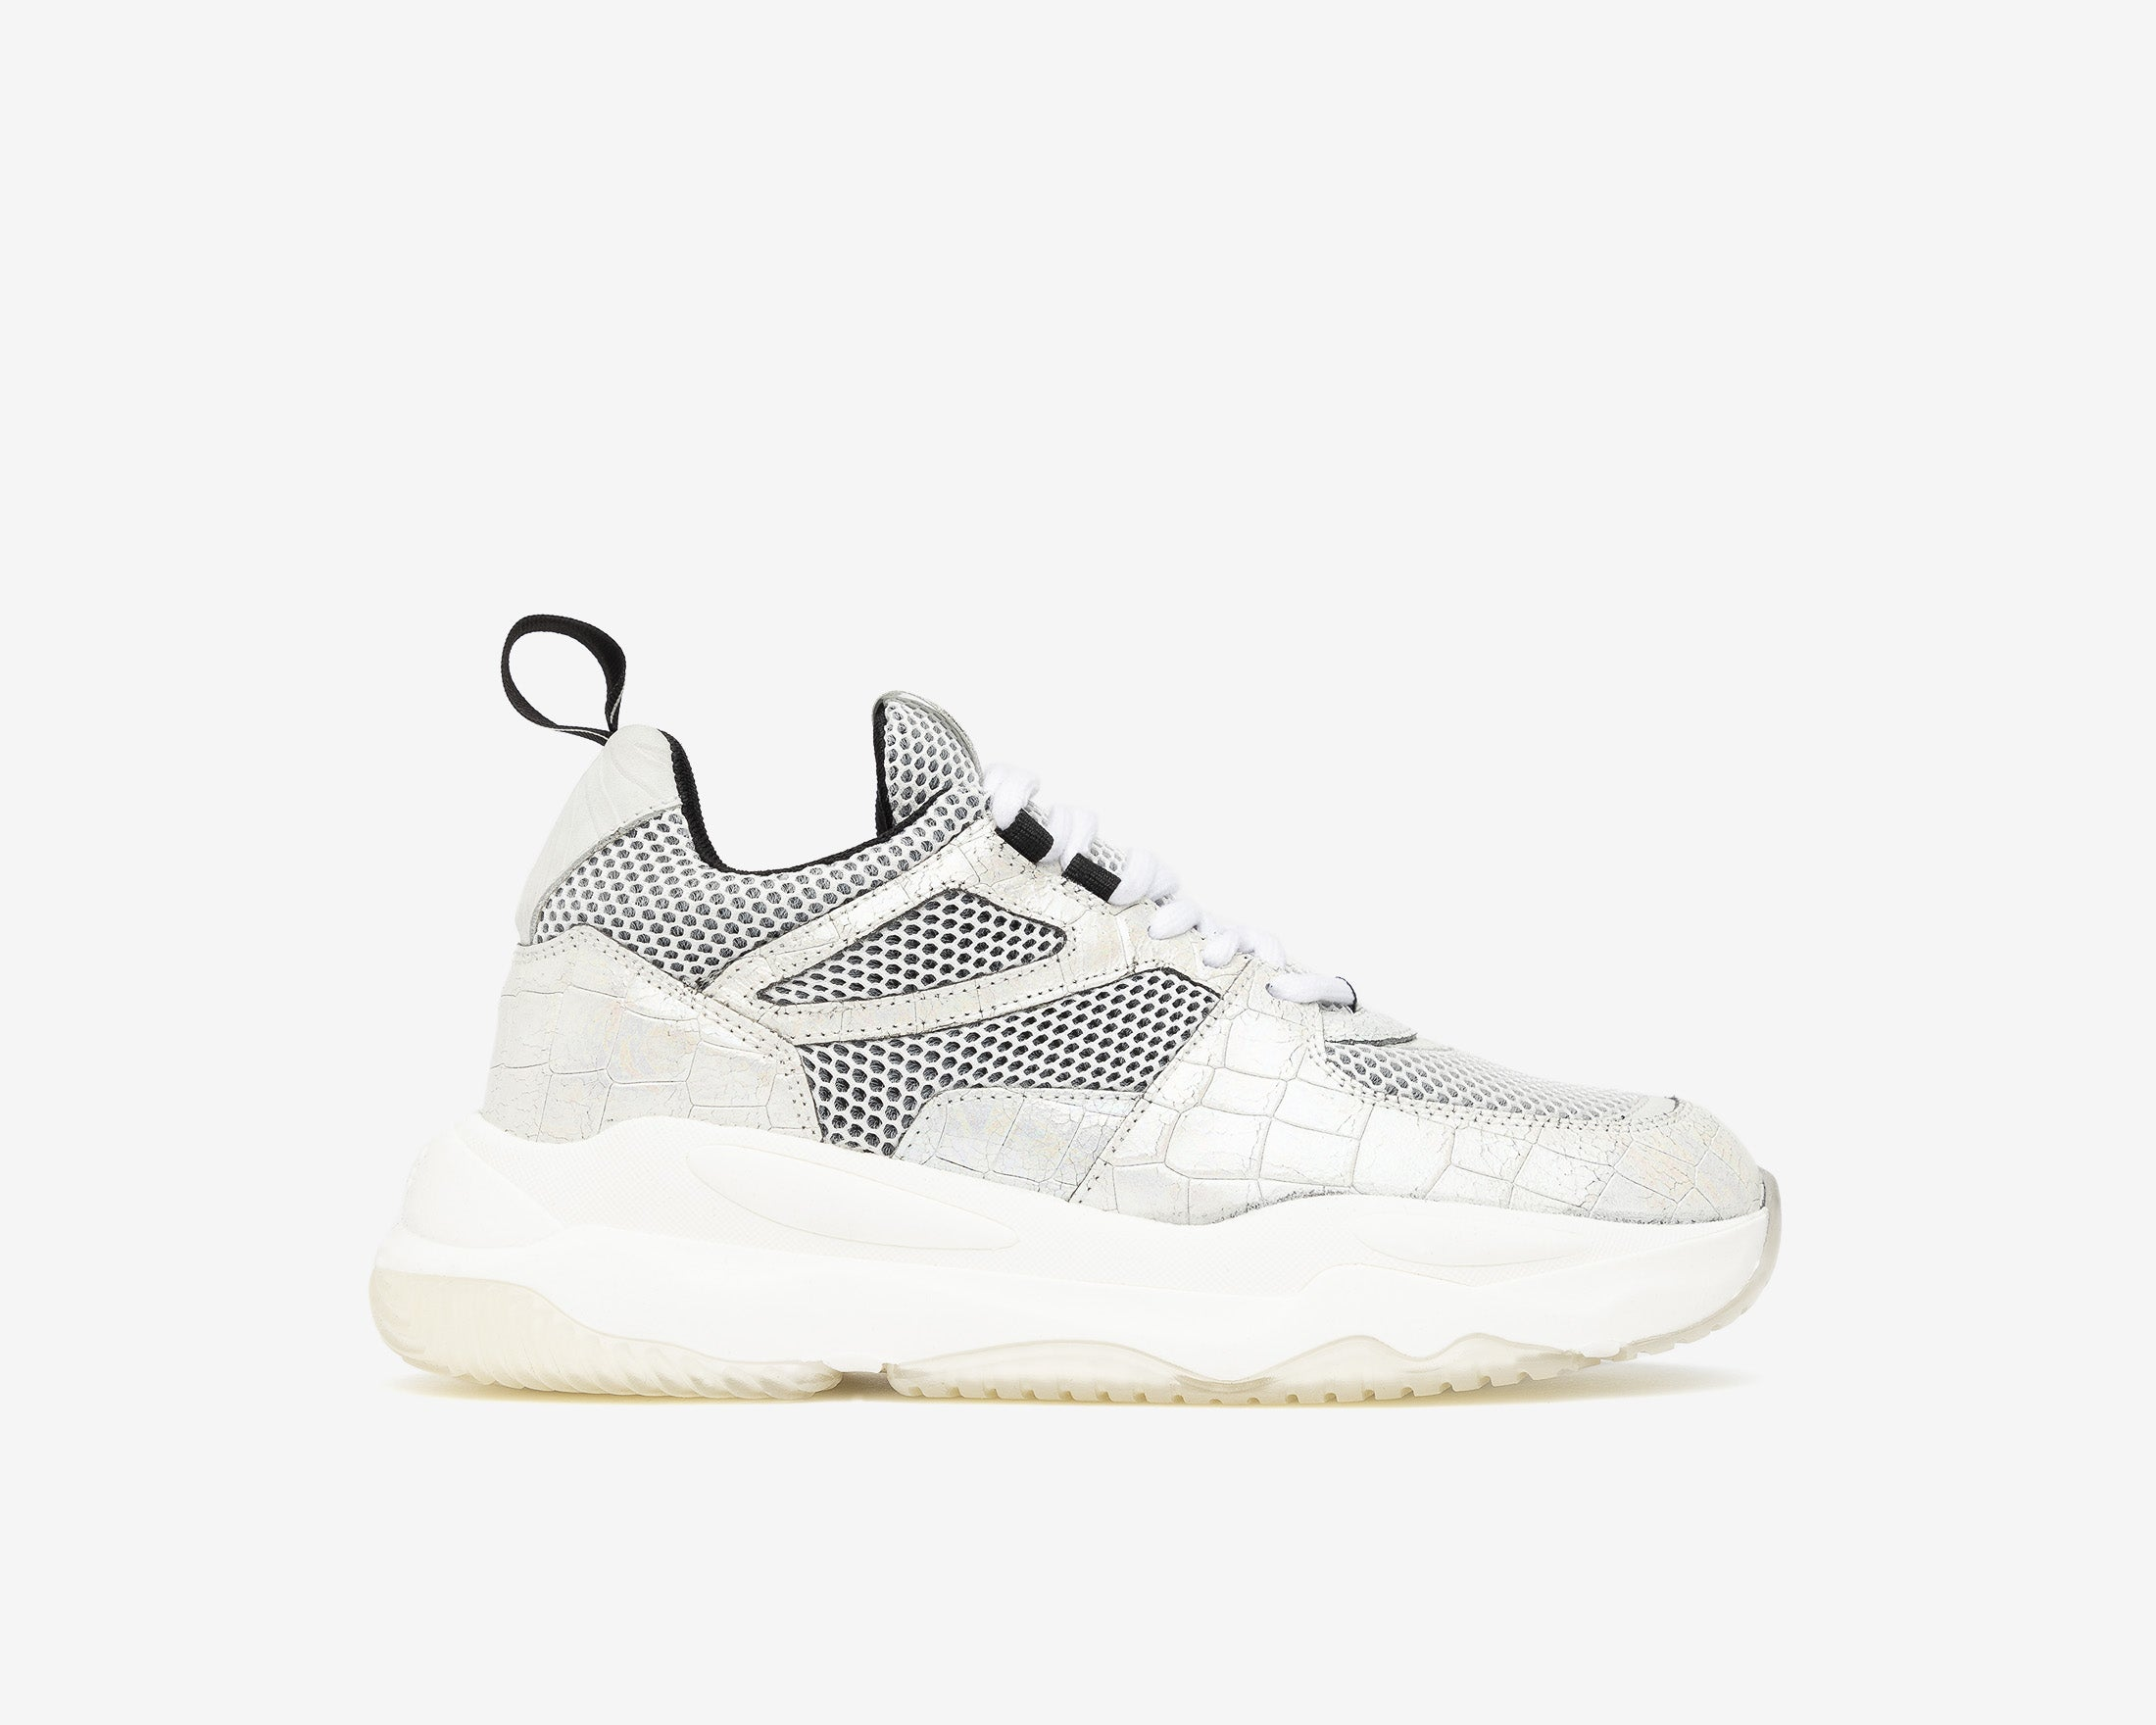 Luke Chunky Sneaker in White Zebra - Profile